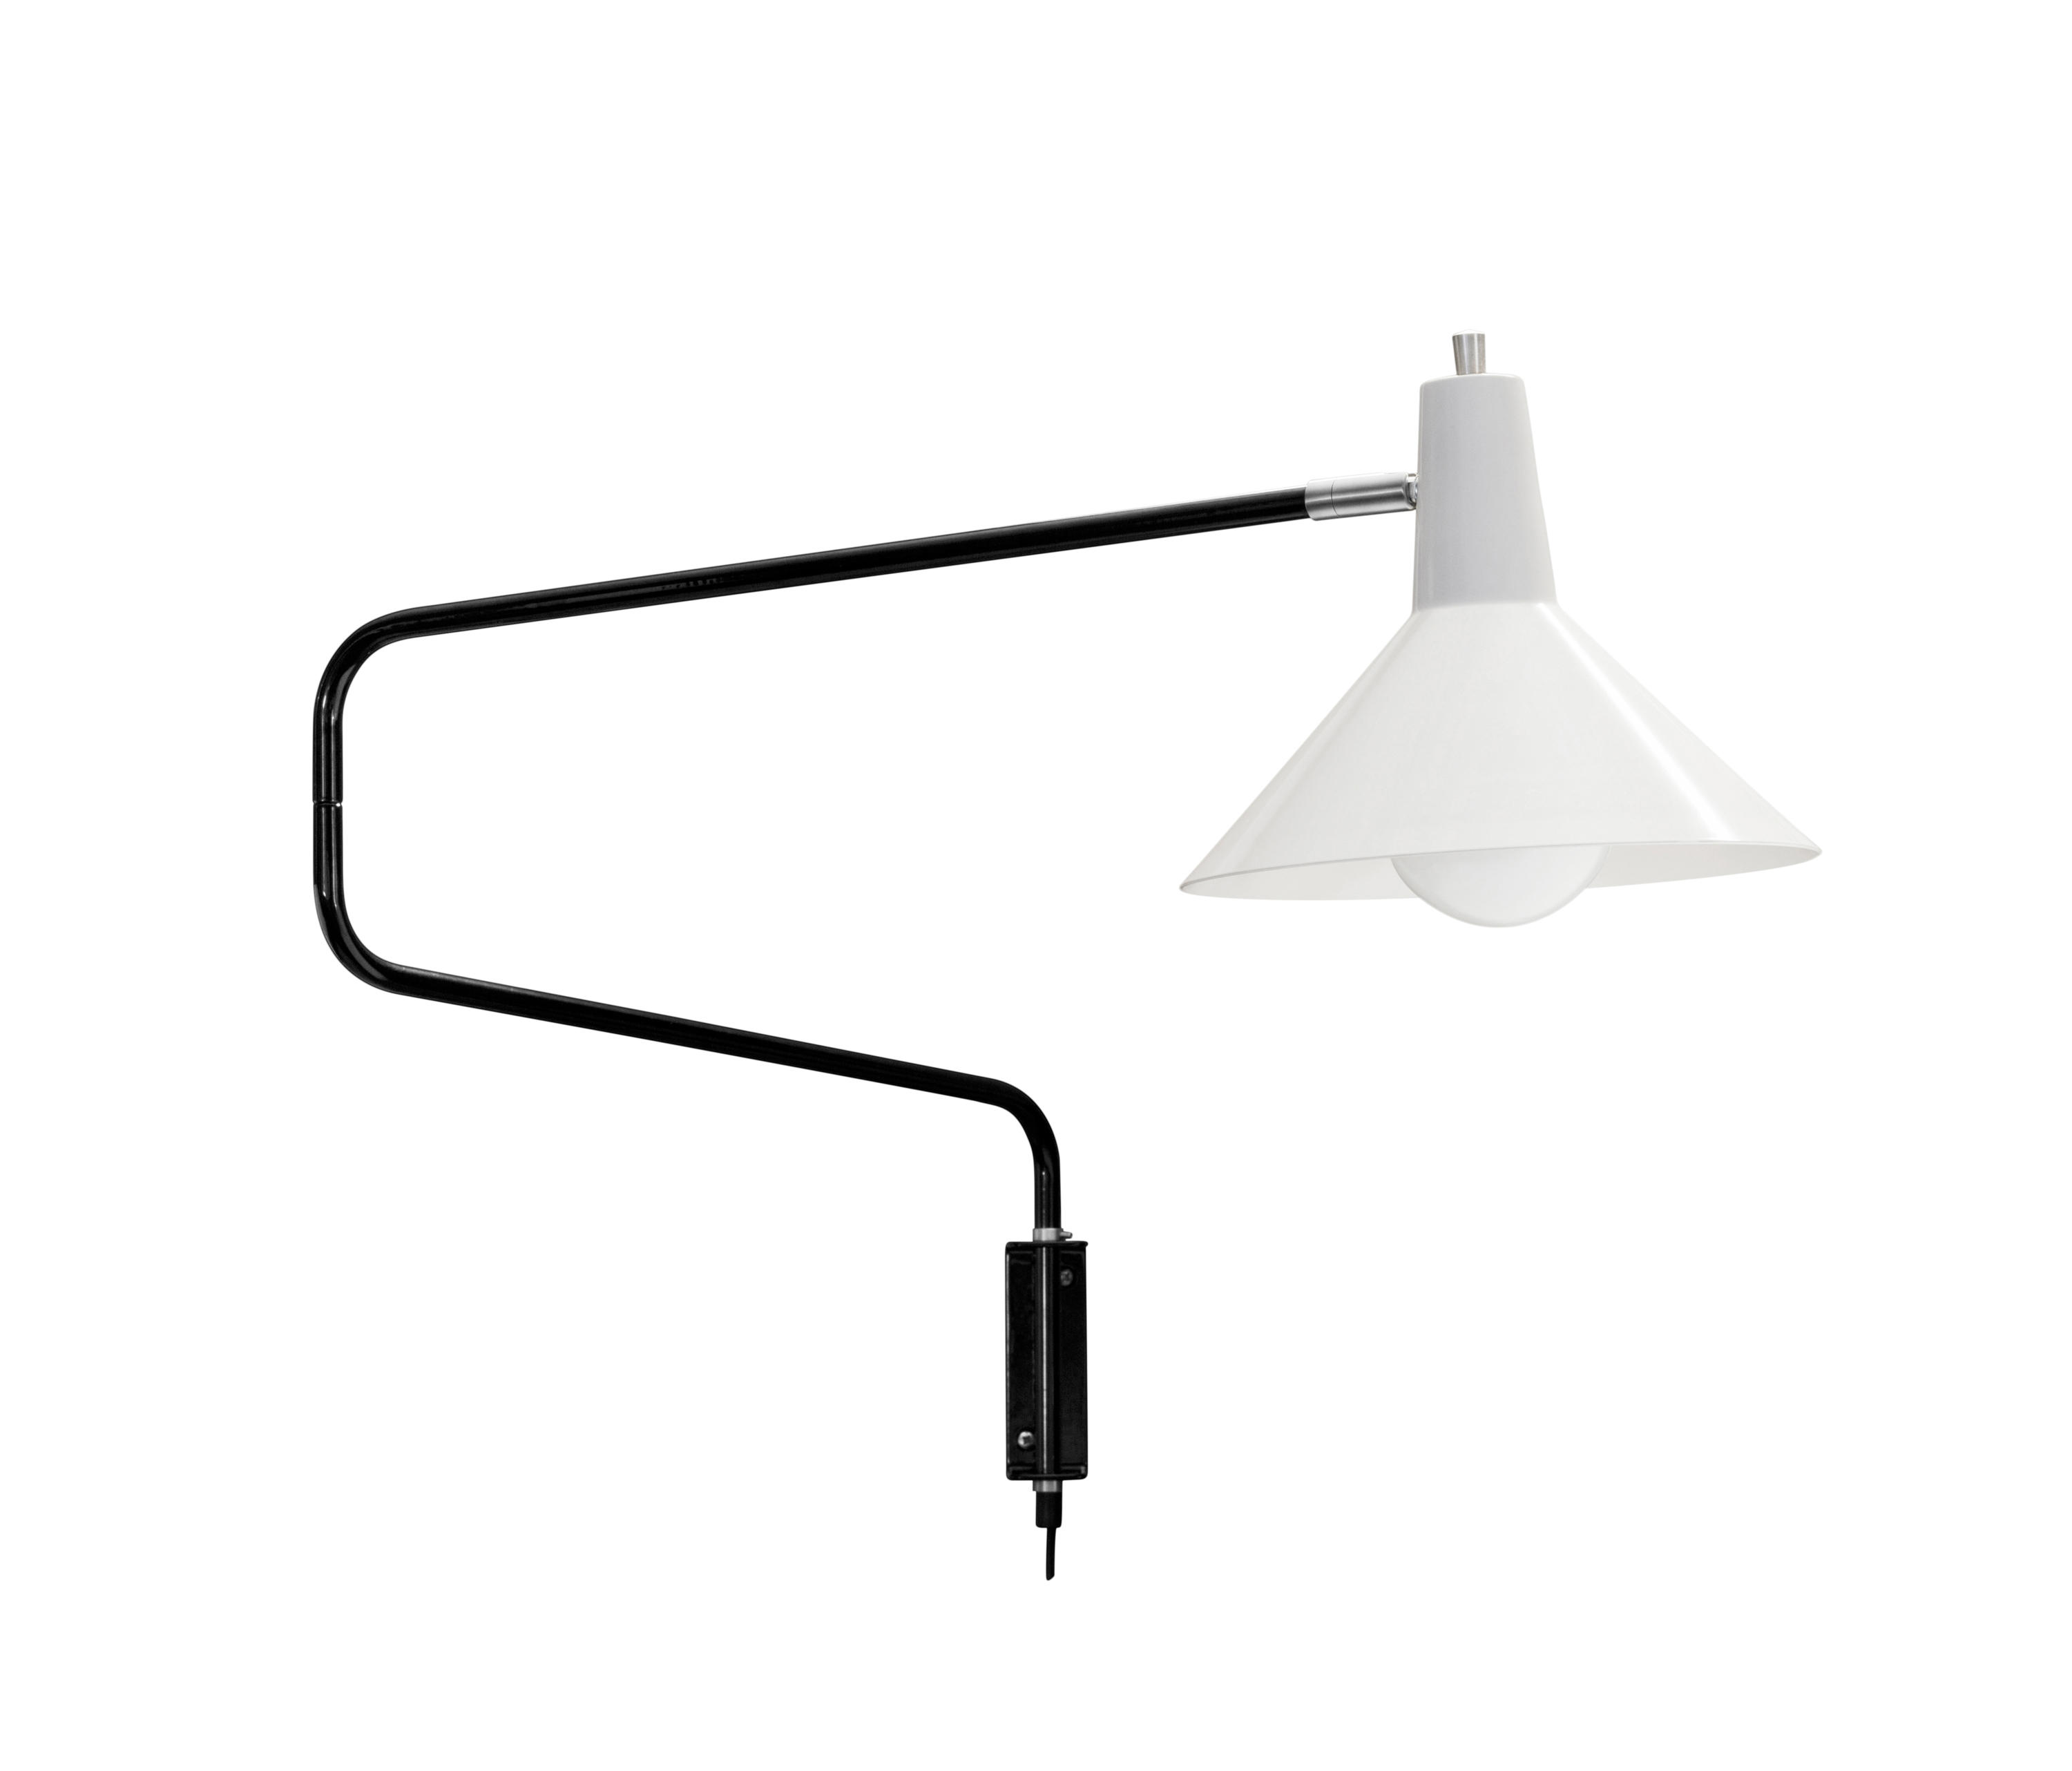 WALL LAMP NO.1602 THE PAPERCLIP - General lighting from ANVIA ...